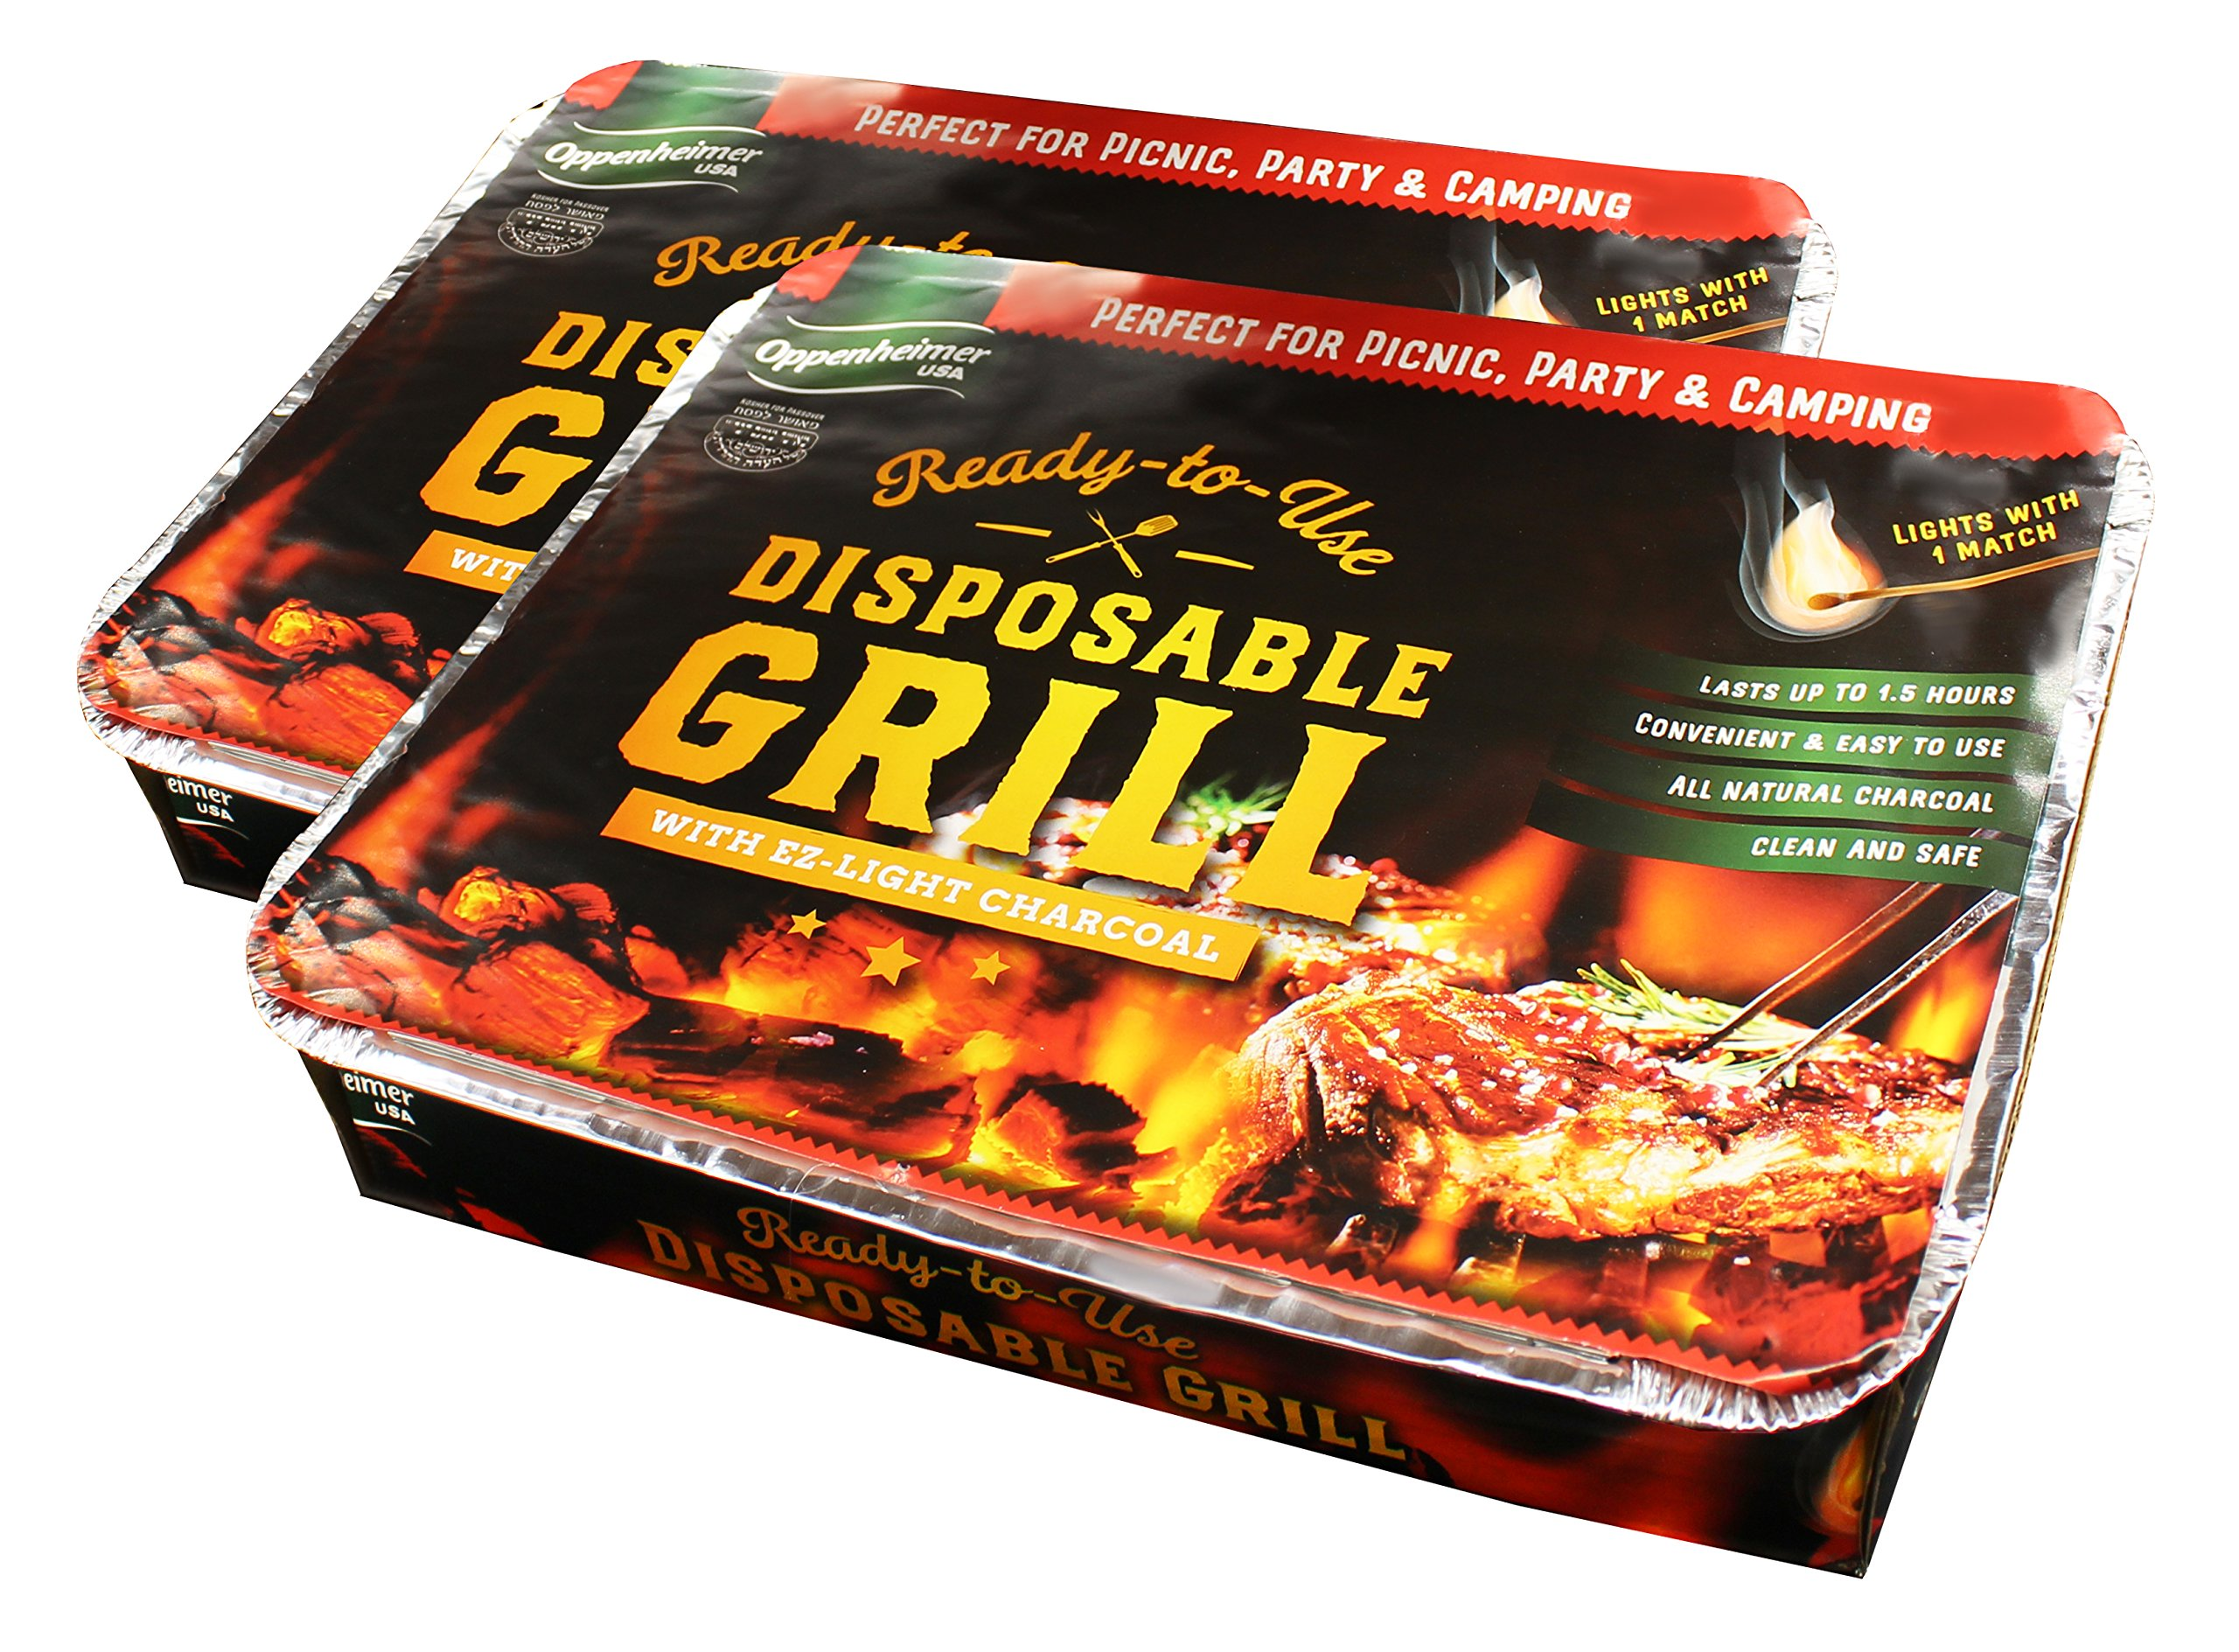 2-Pack Disposable Charcoal Grill On-the-Go Ready to Use EZ To Light Kosher By Oppenheimer USA